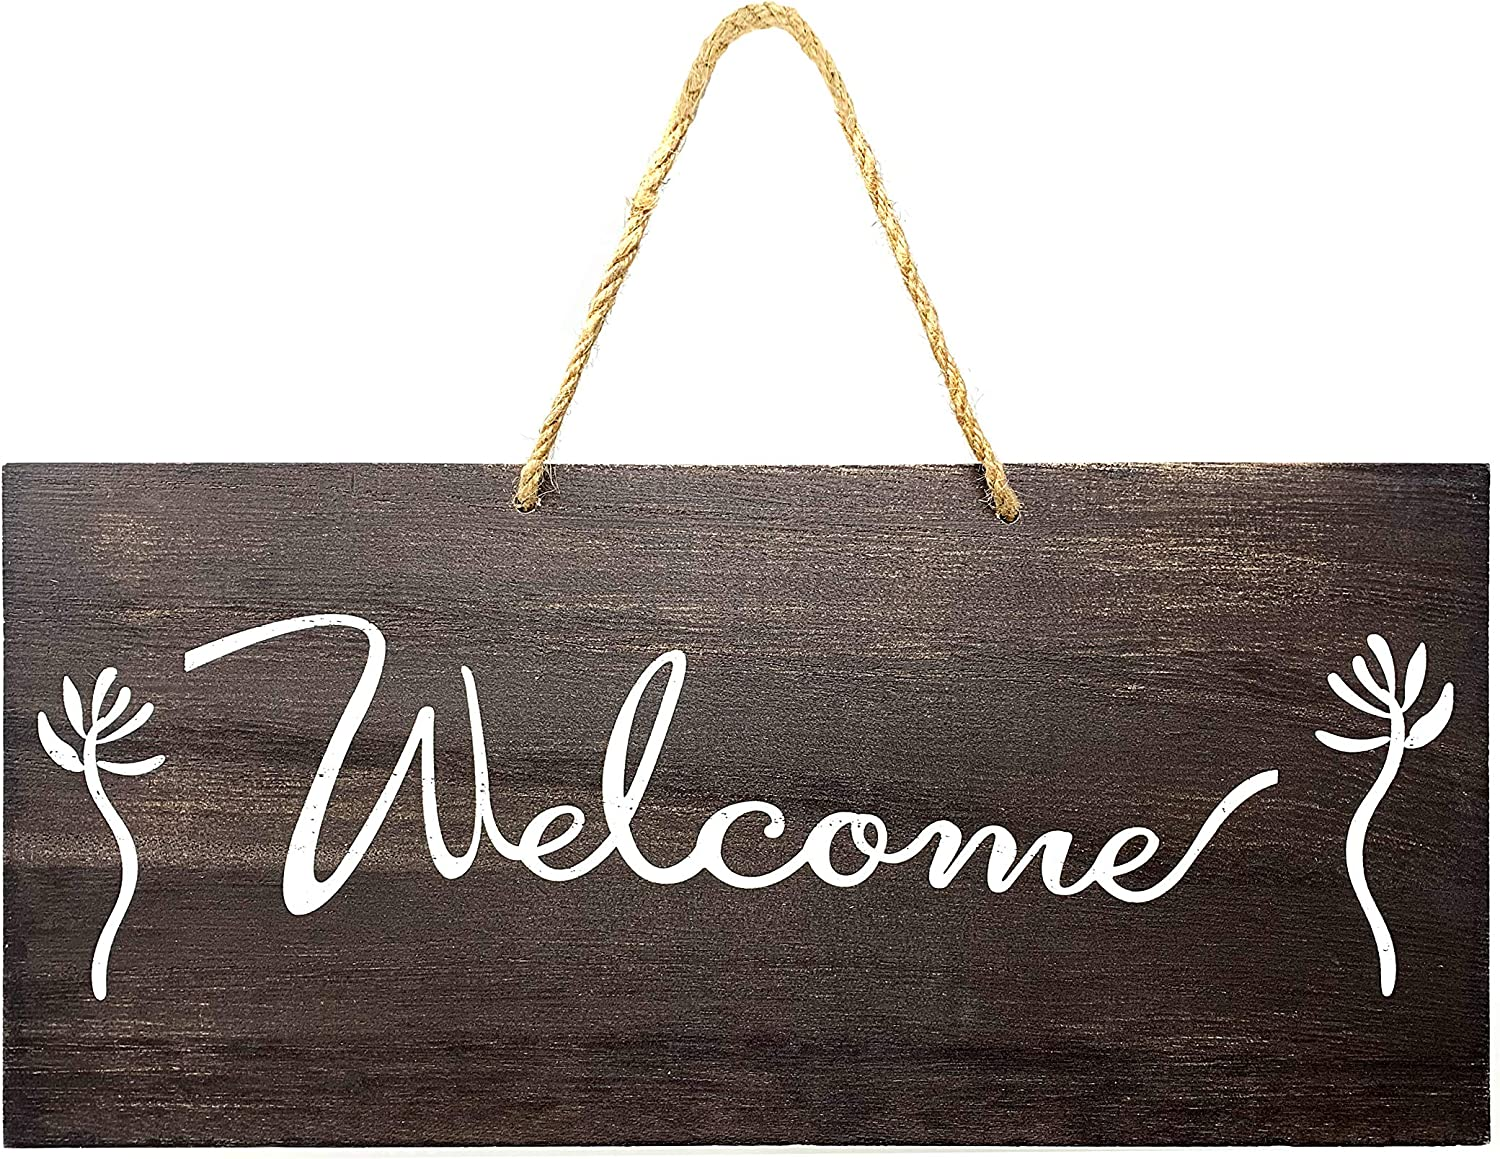 JennyGems - Welcome Sign - Rustic Farmhouse Sign - 13 x 6 Solid Wood Hanging Sign - Country Sign - Rustic Decorations, Farmhouse Wall Decor